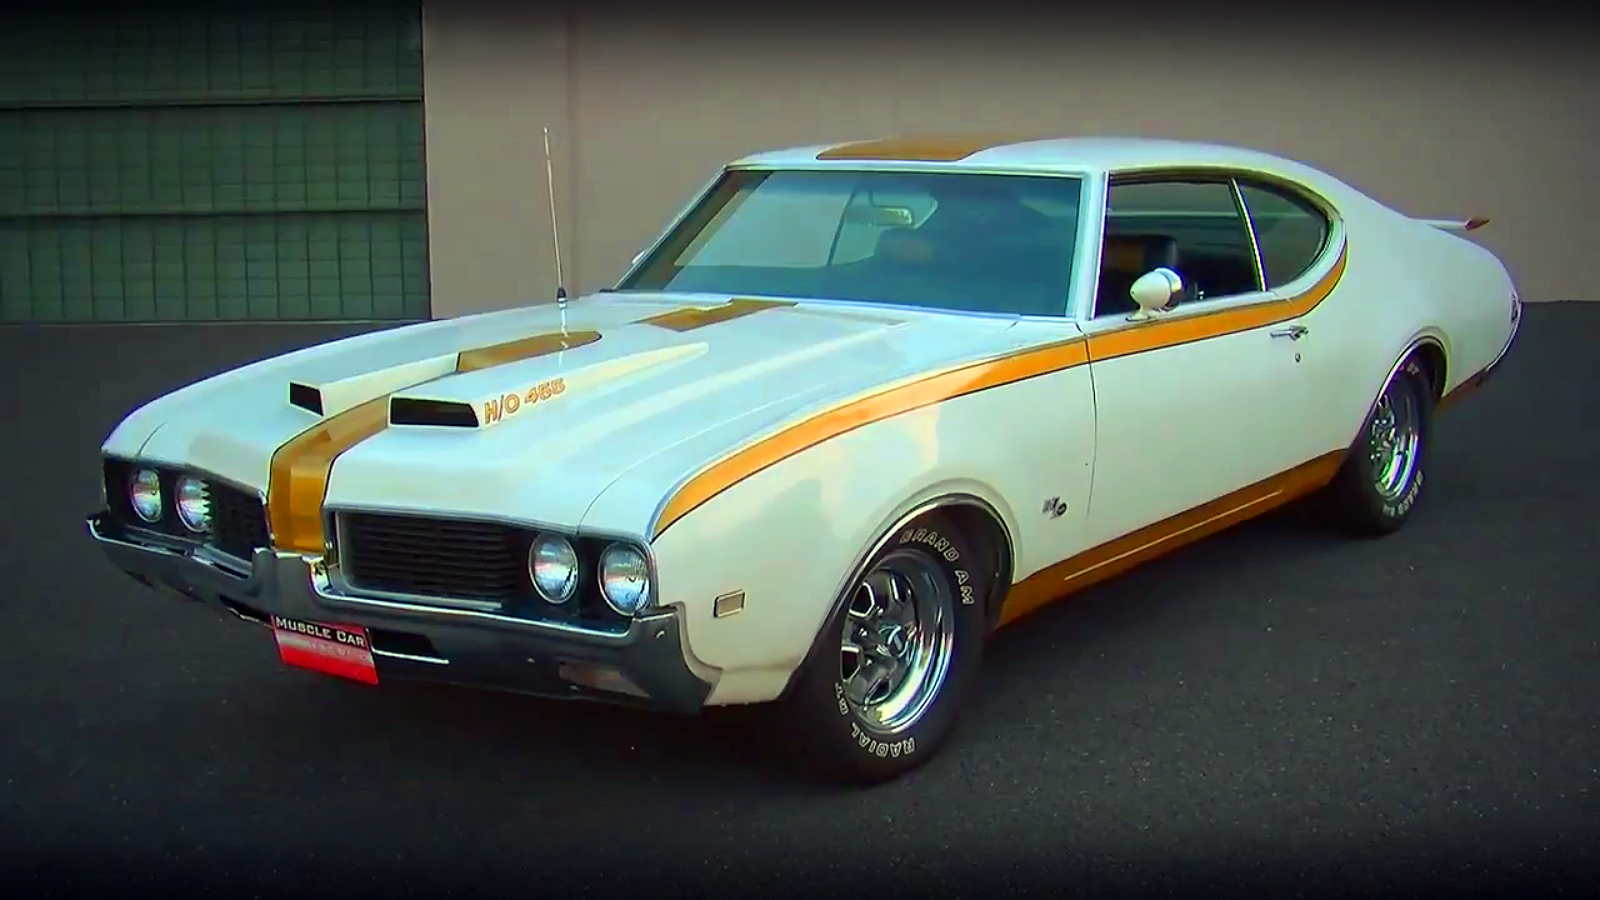 The True About this 1969 Hurst Oldsmobile Limited Edition